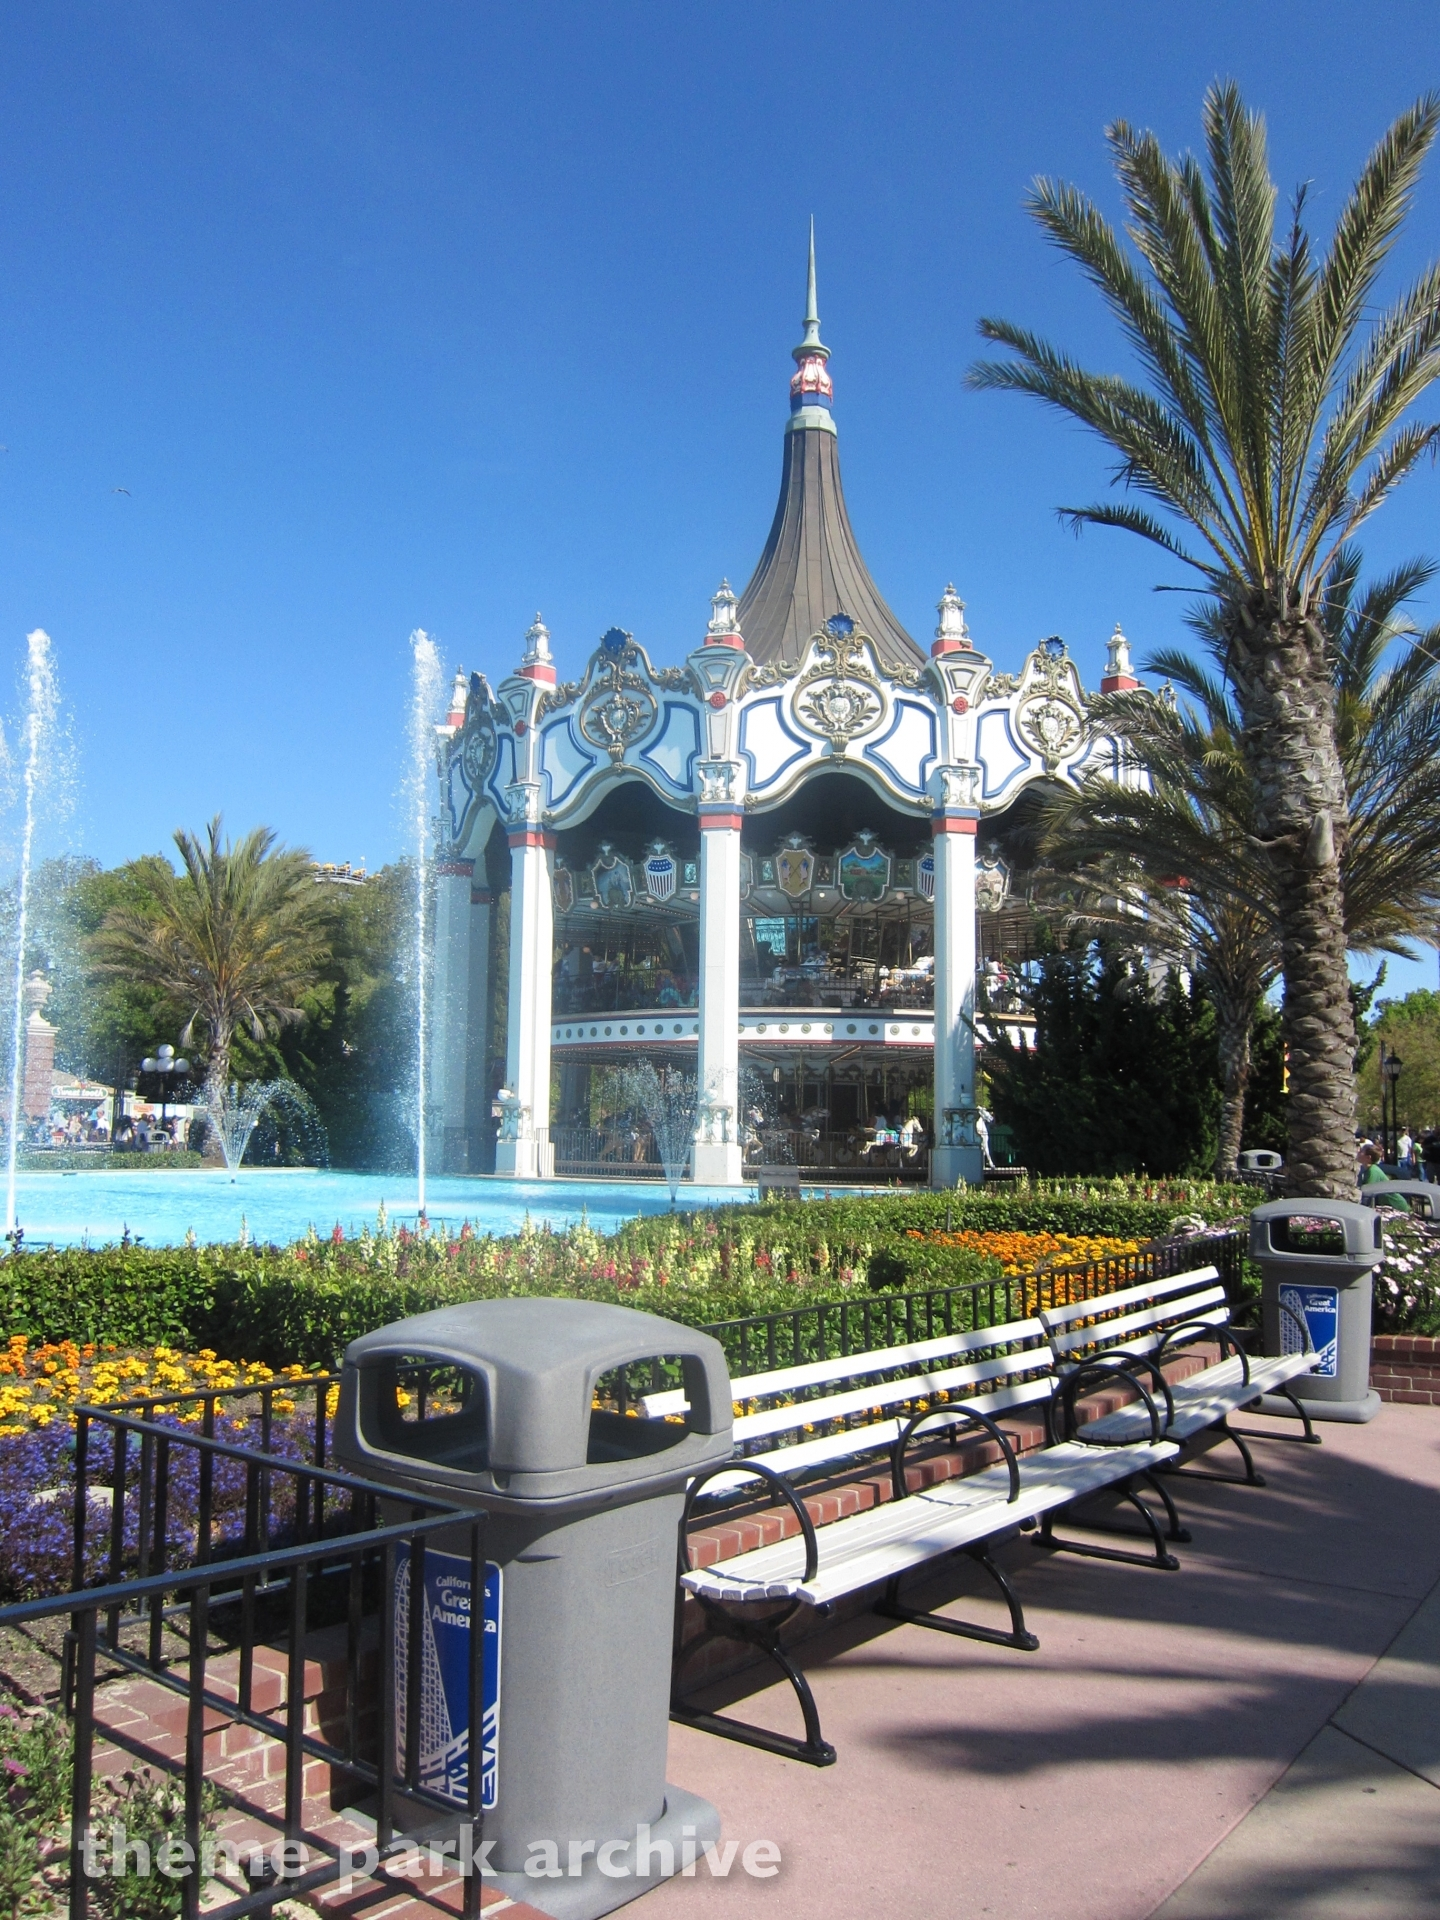 Carousel Columbia at California's Great America